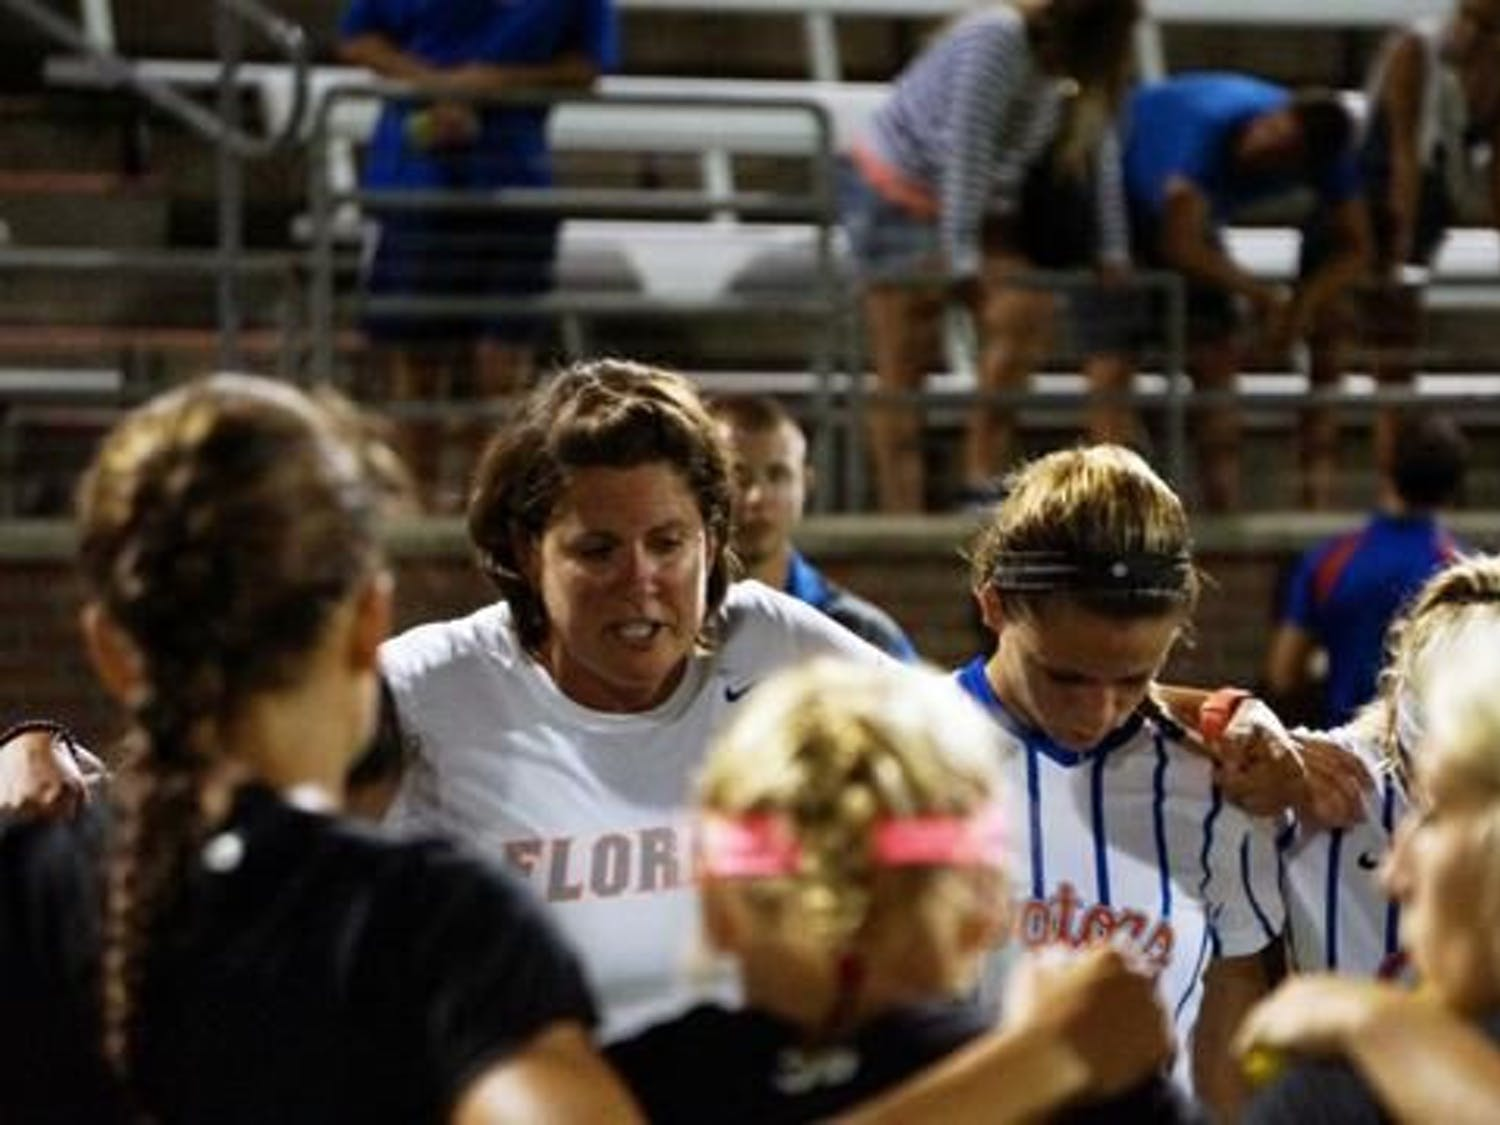 Gators coach Becky Burleigh consoles her team in 2015 after a 2-1 loss at the hands of Texas A&M. Burleigh has been at the helm for Florida since 1995.